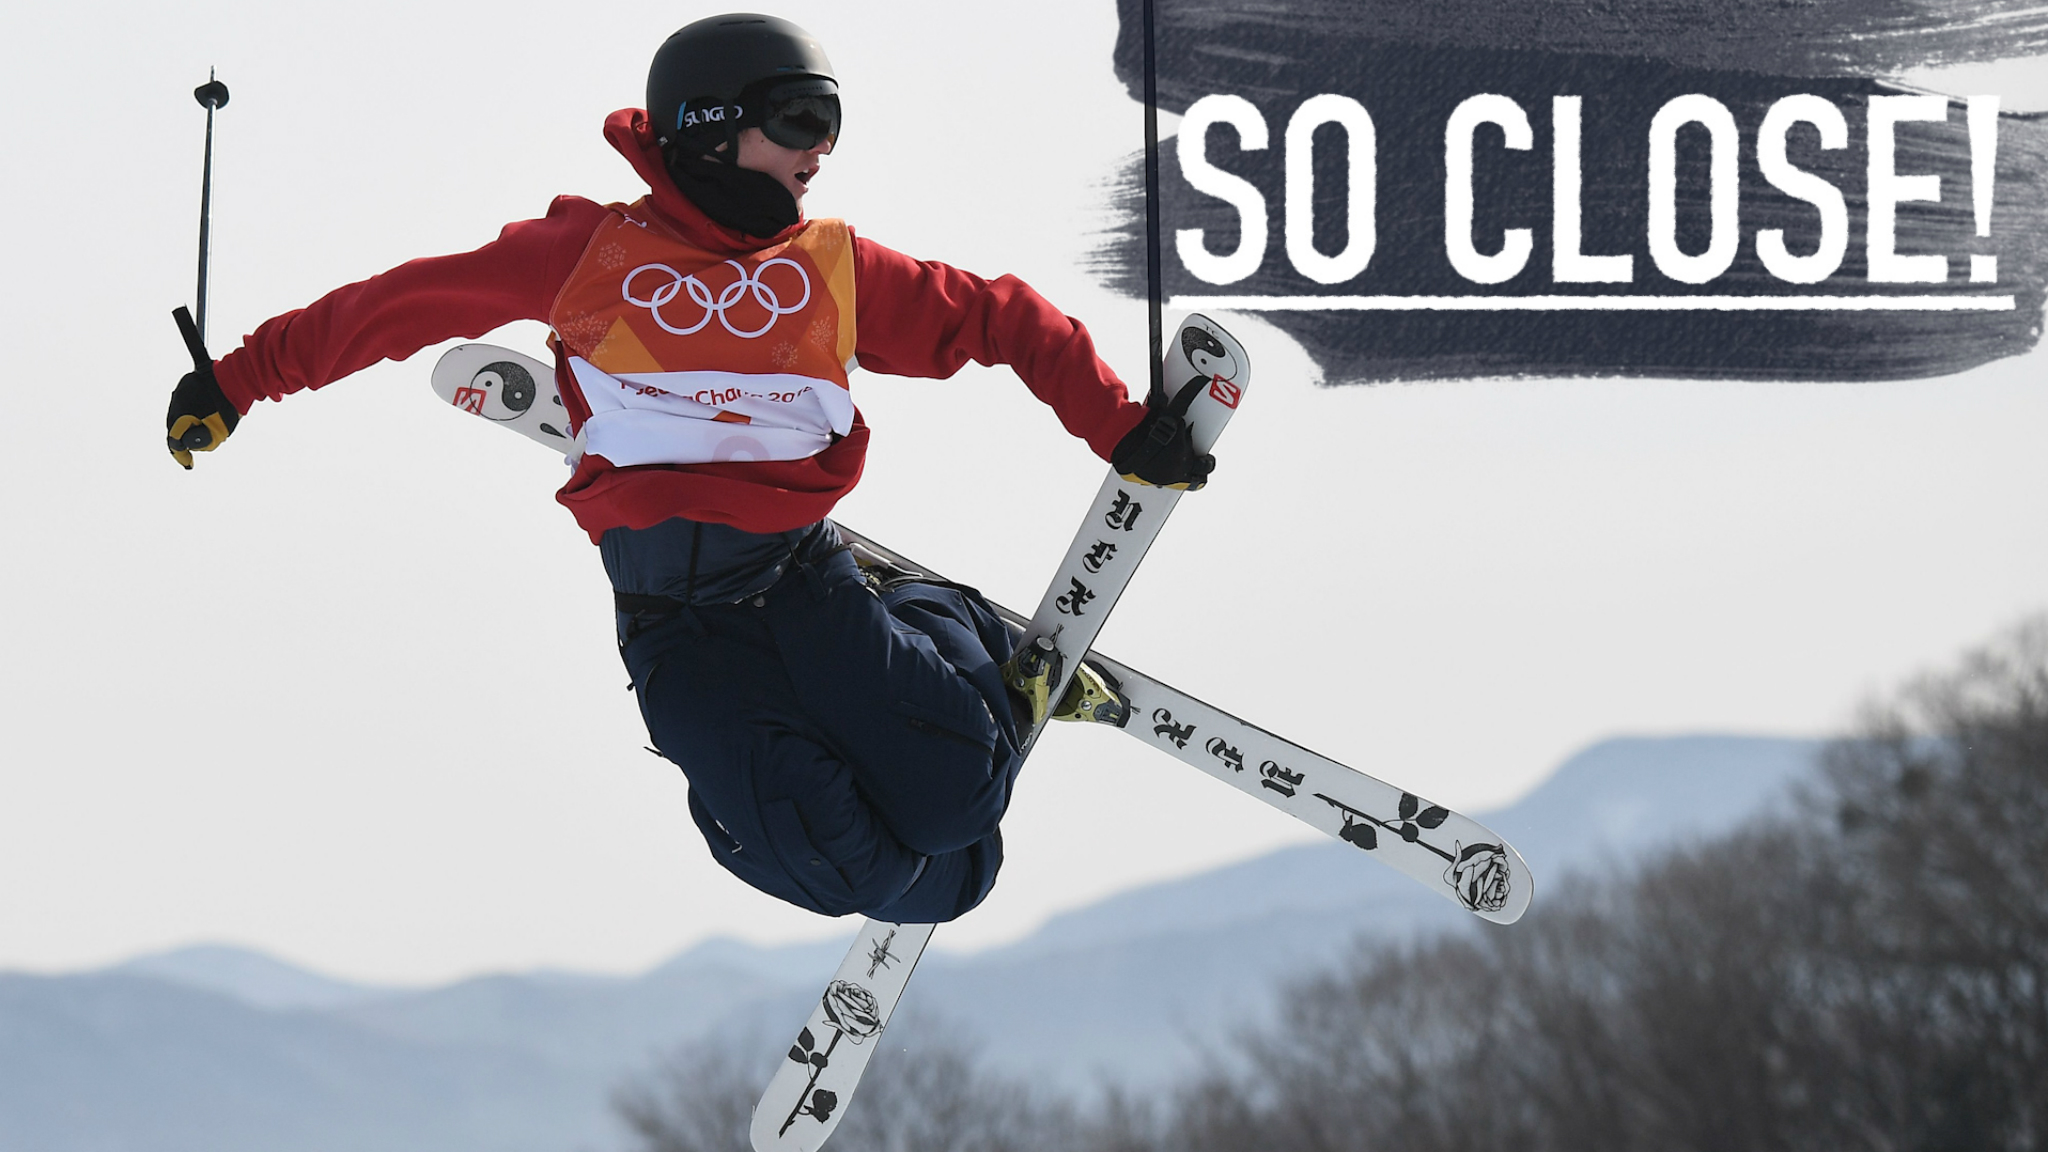 Winter Olympics 2018: James Woods misses out on slopestyle medal as Oysteing Braaten wins gold